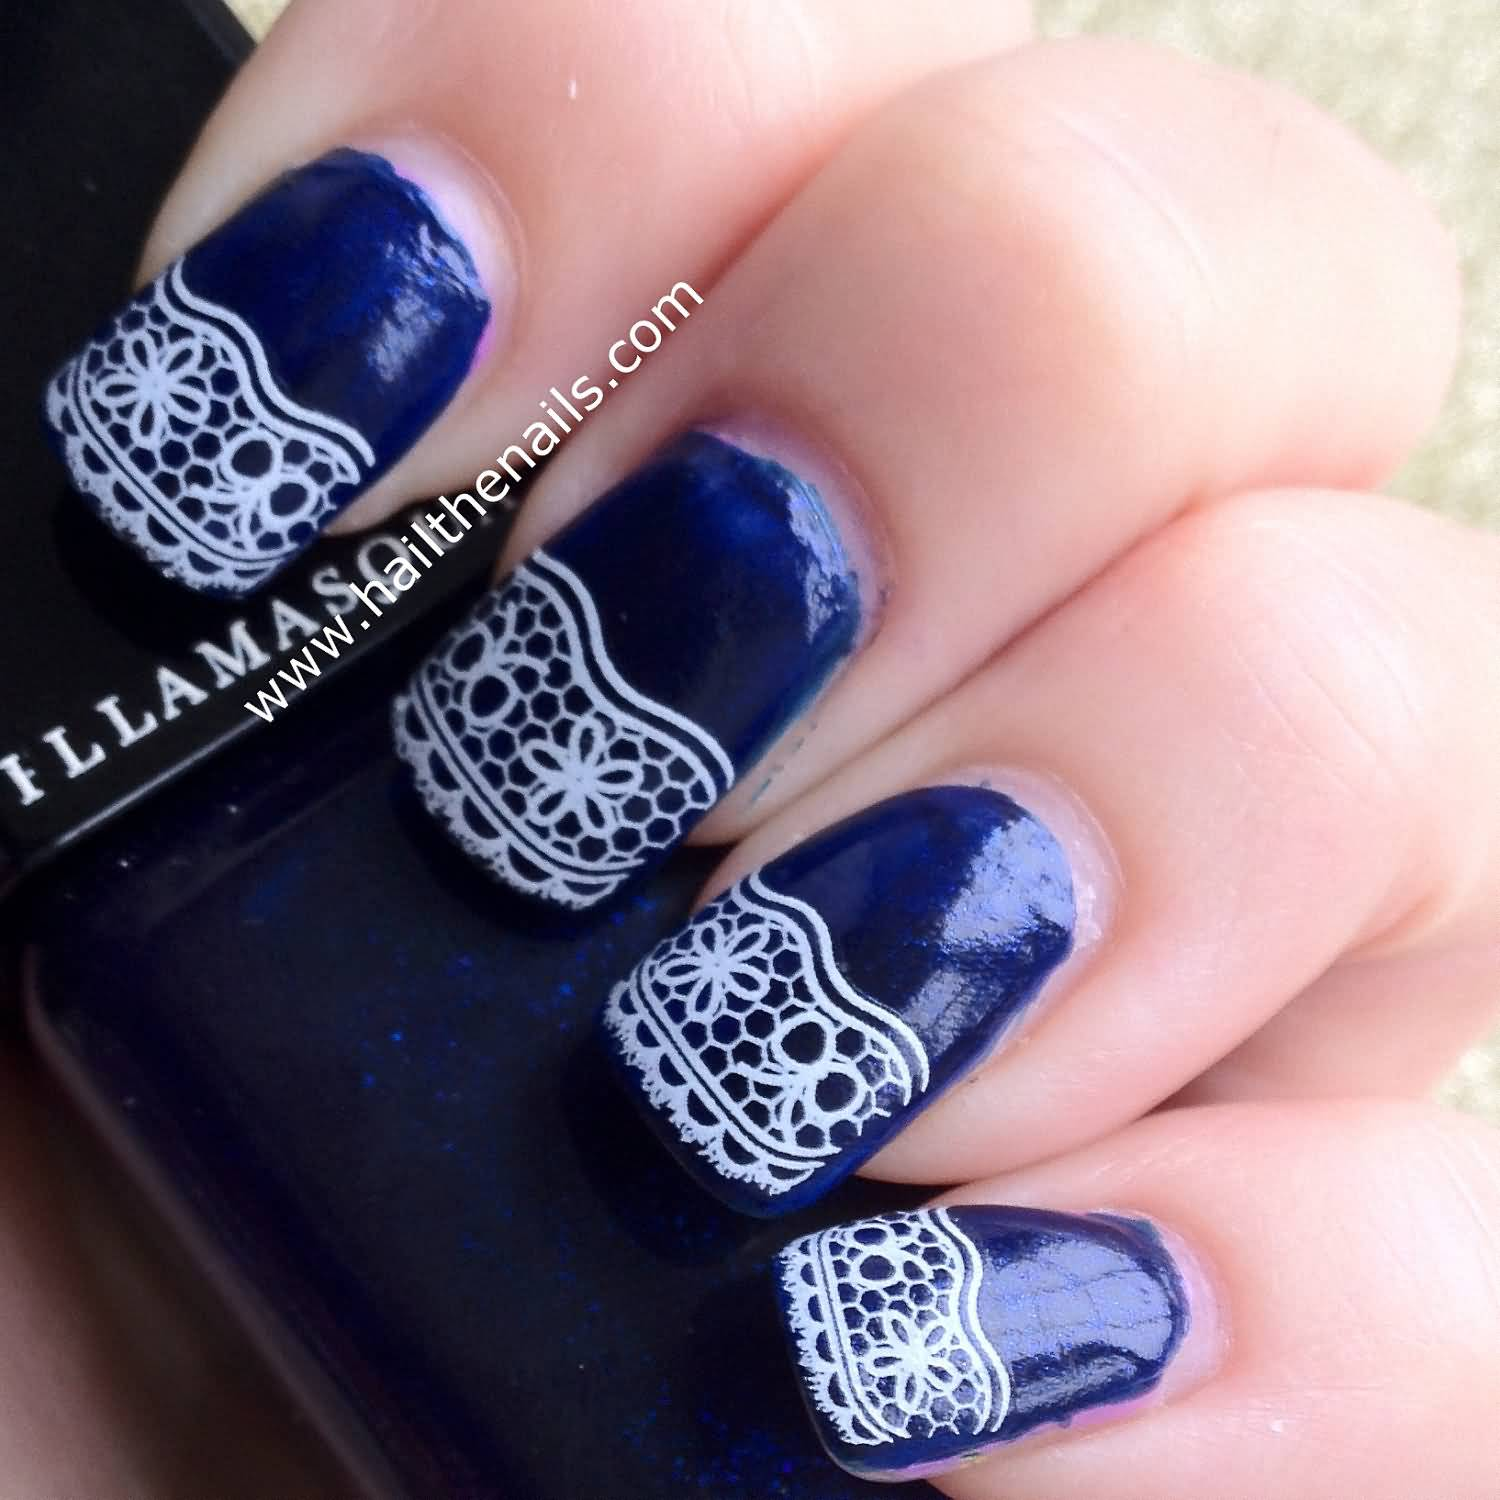 Nail Art On Navy Blue Nails: 50+ Latest Lace Nail Art Design Ideas